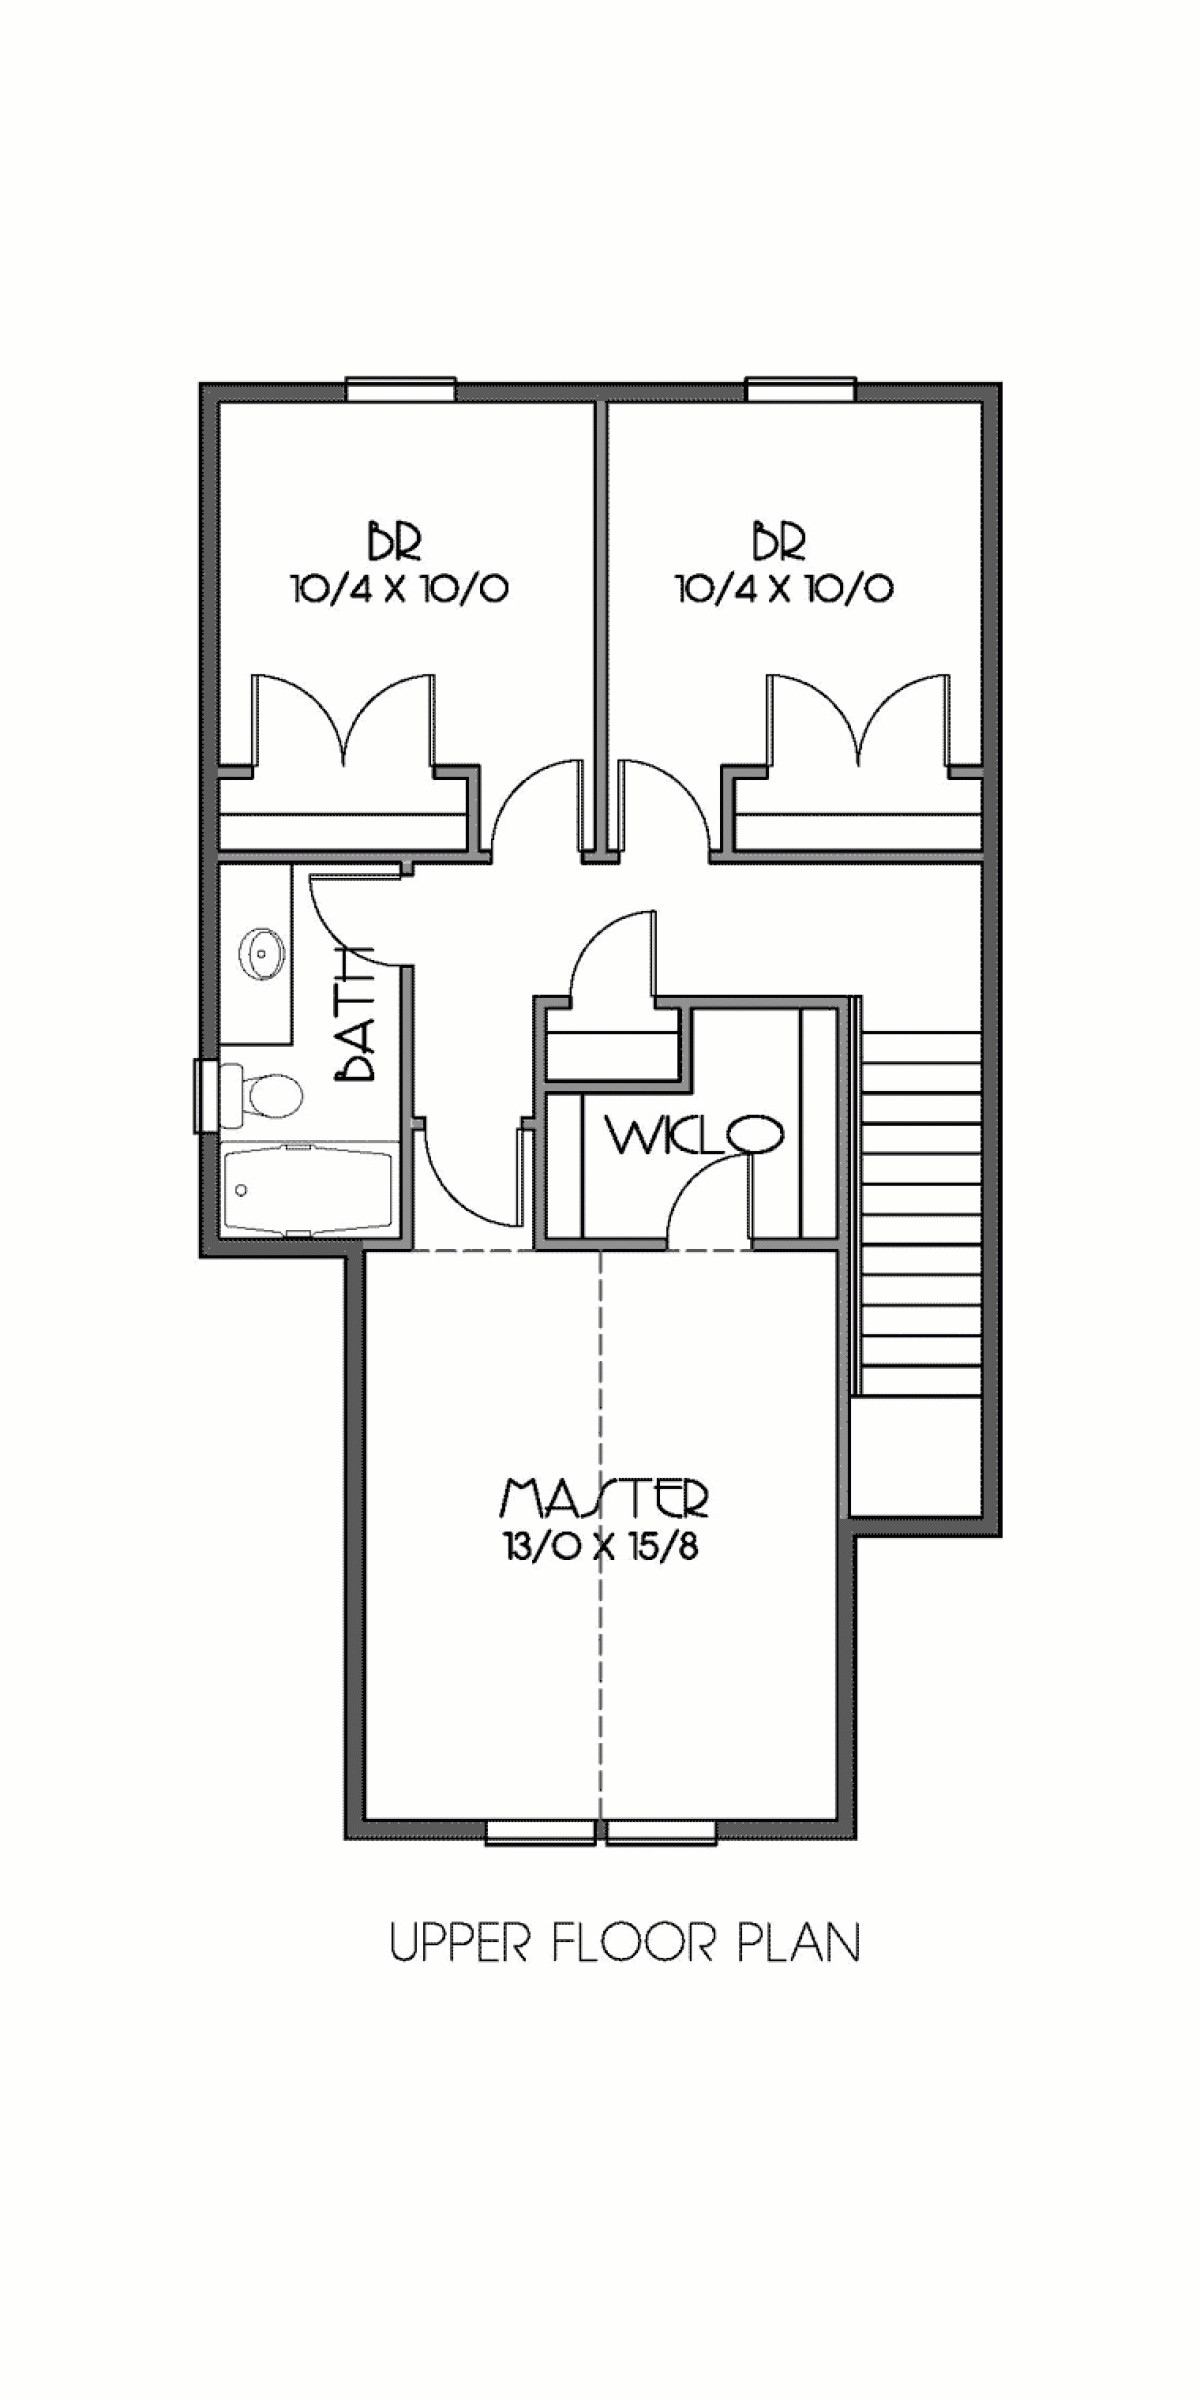 Floor Plans for My Home My Home Plans In House Plan 76807 at Familyhomeplans